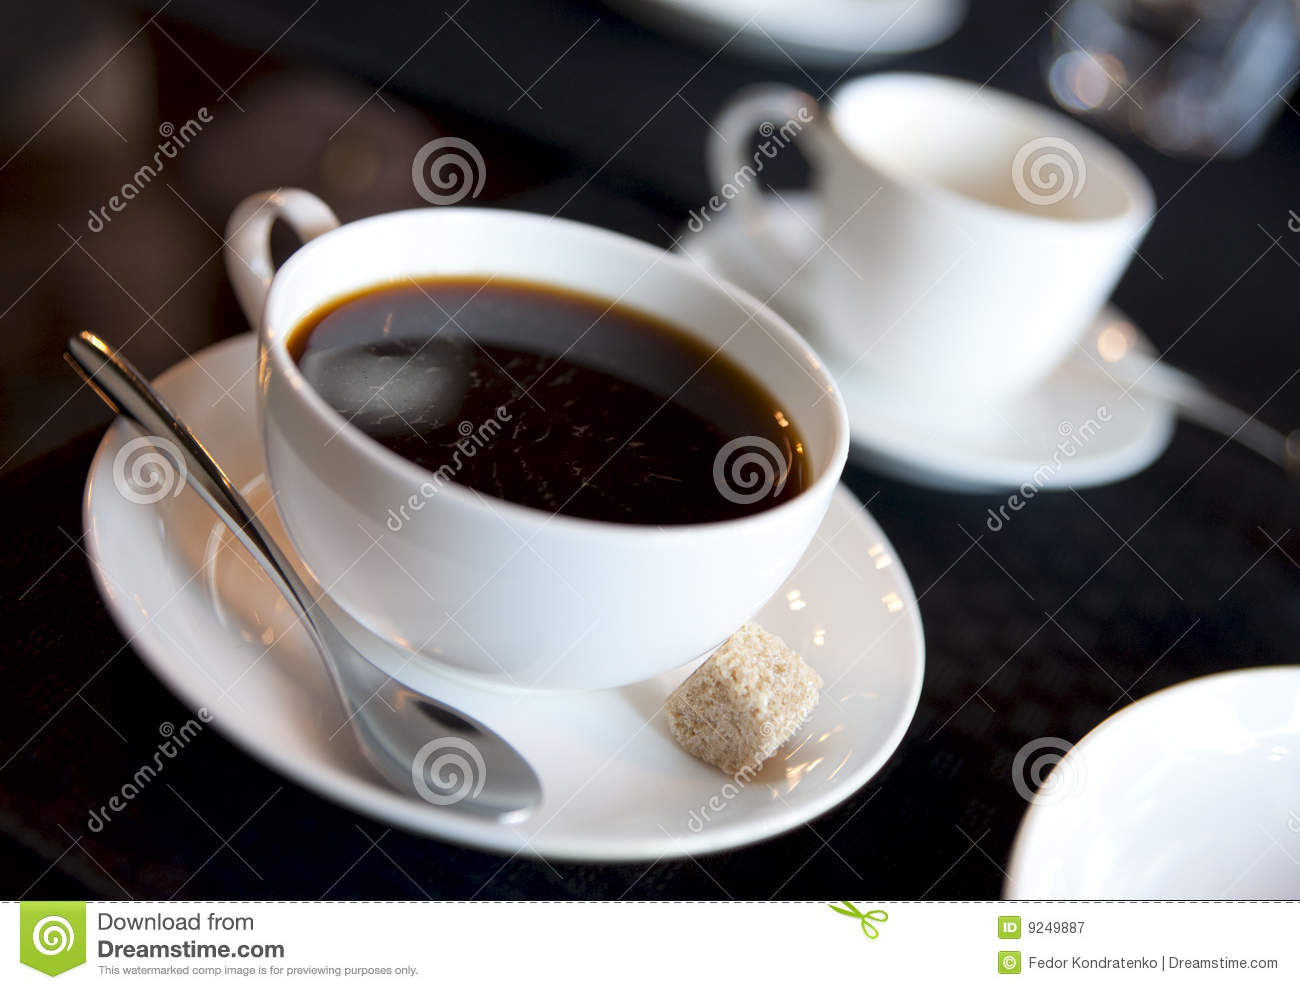 Americano Coffee To Go Americano With Espresso Cup In Background Royalty Free